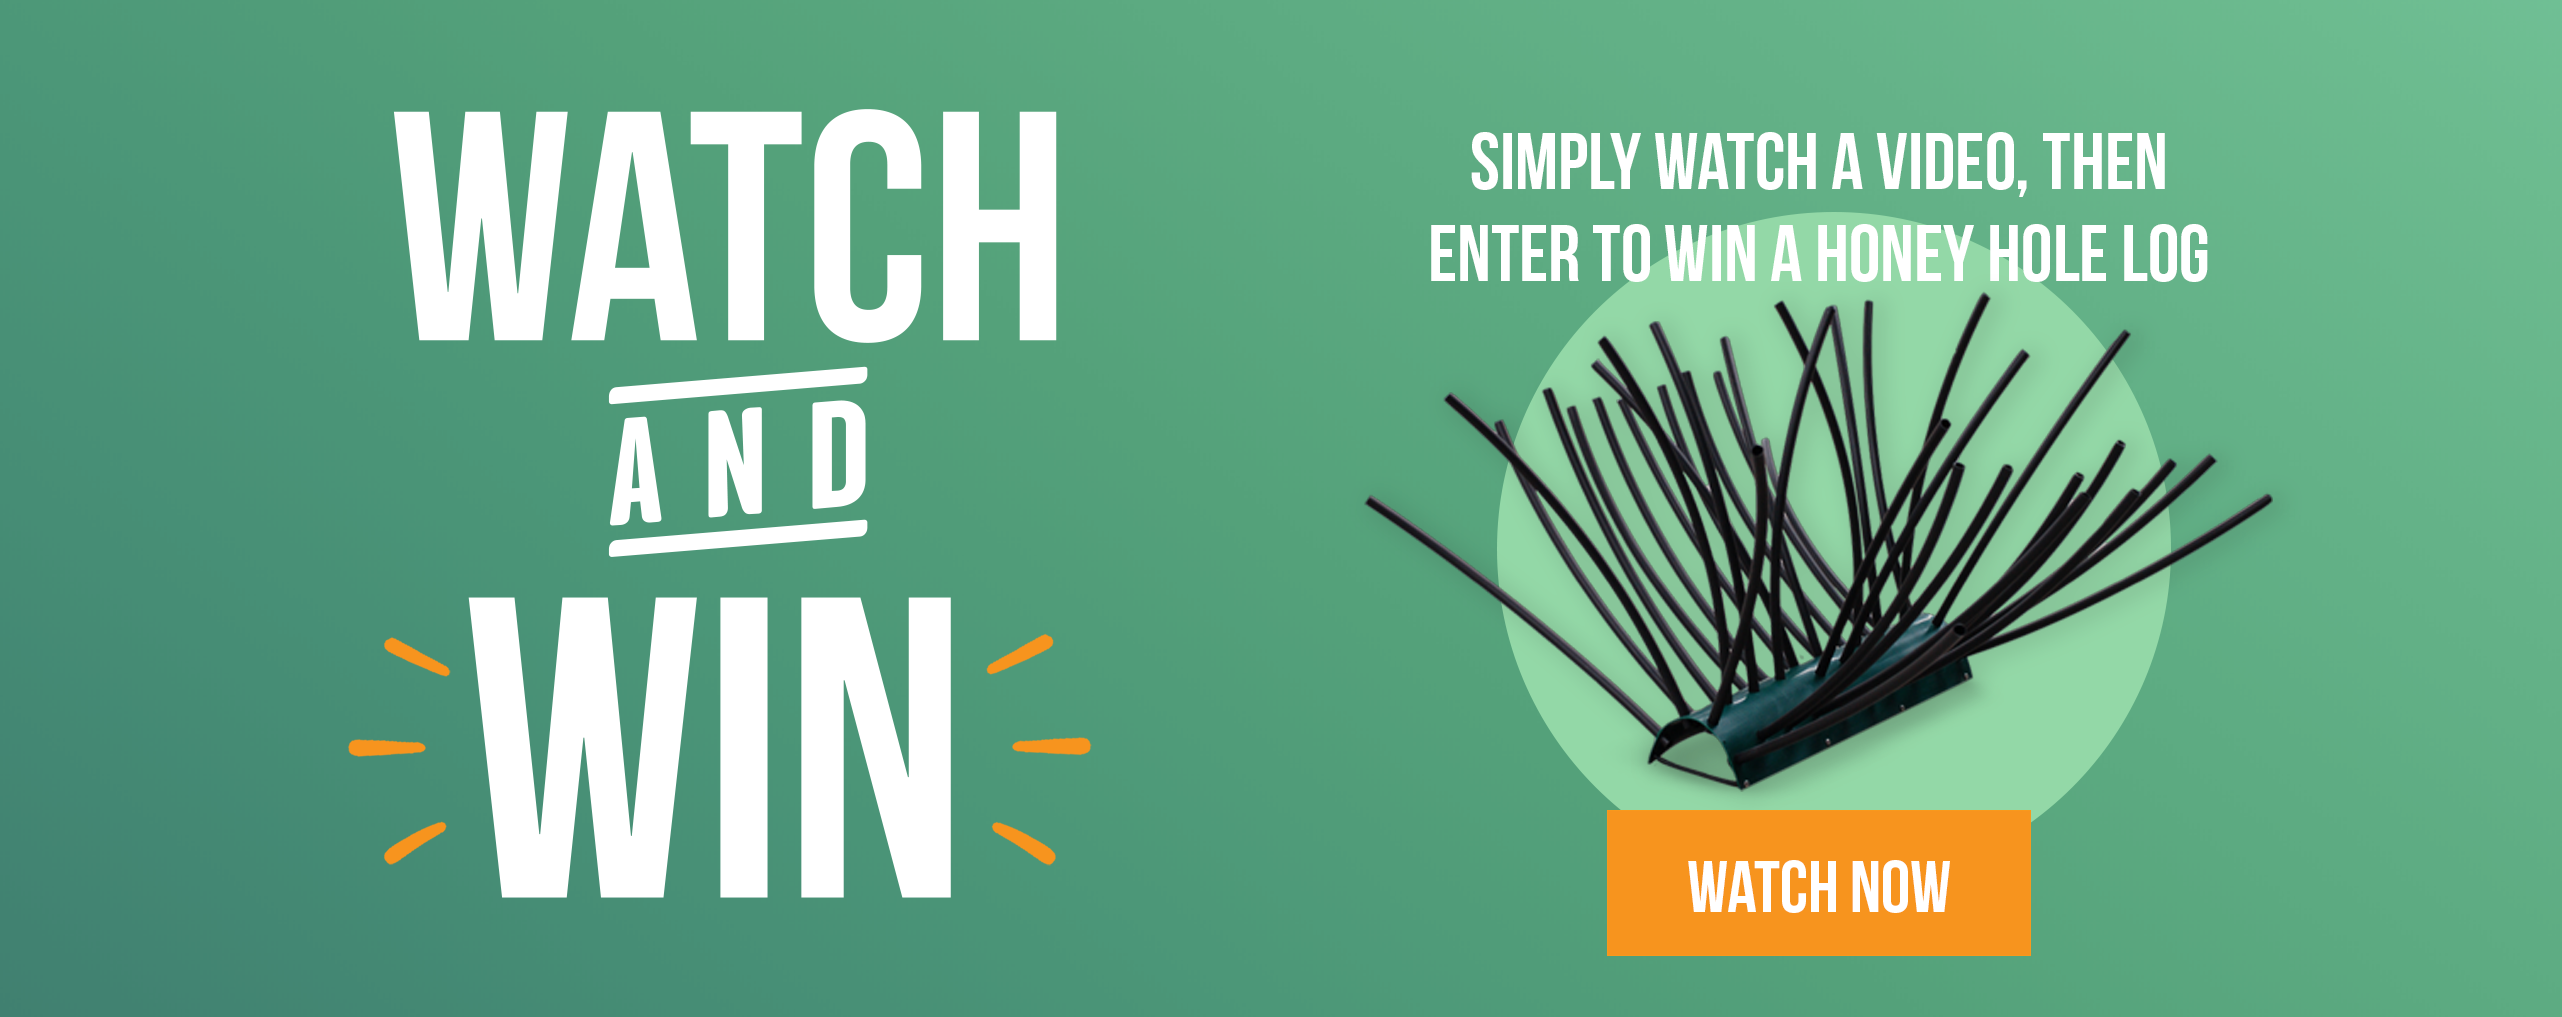 Watch and Win: Simply watch a video and enter to win a honey hole log from pond king.